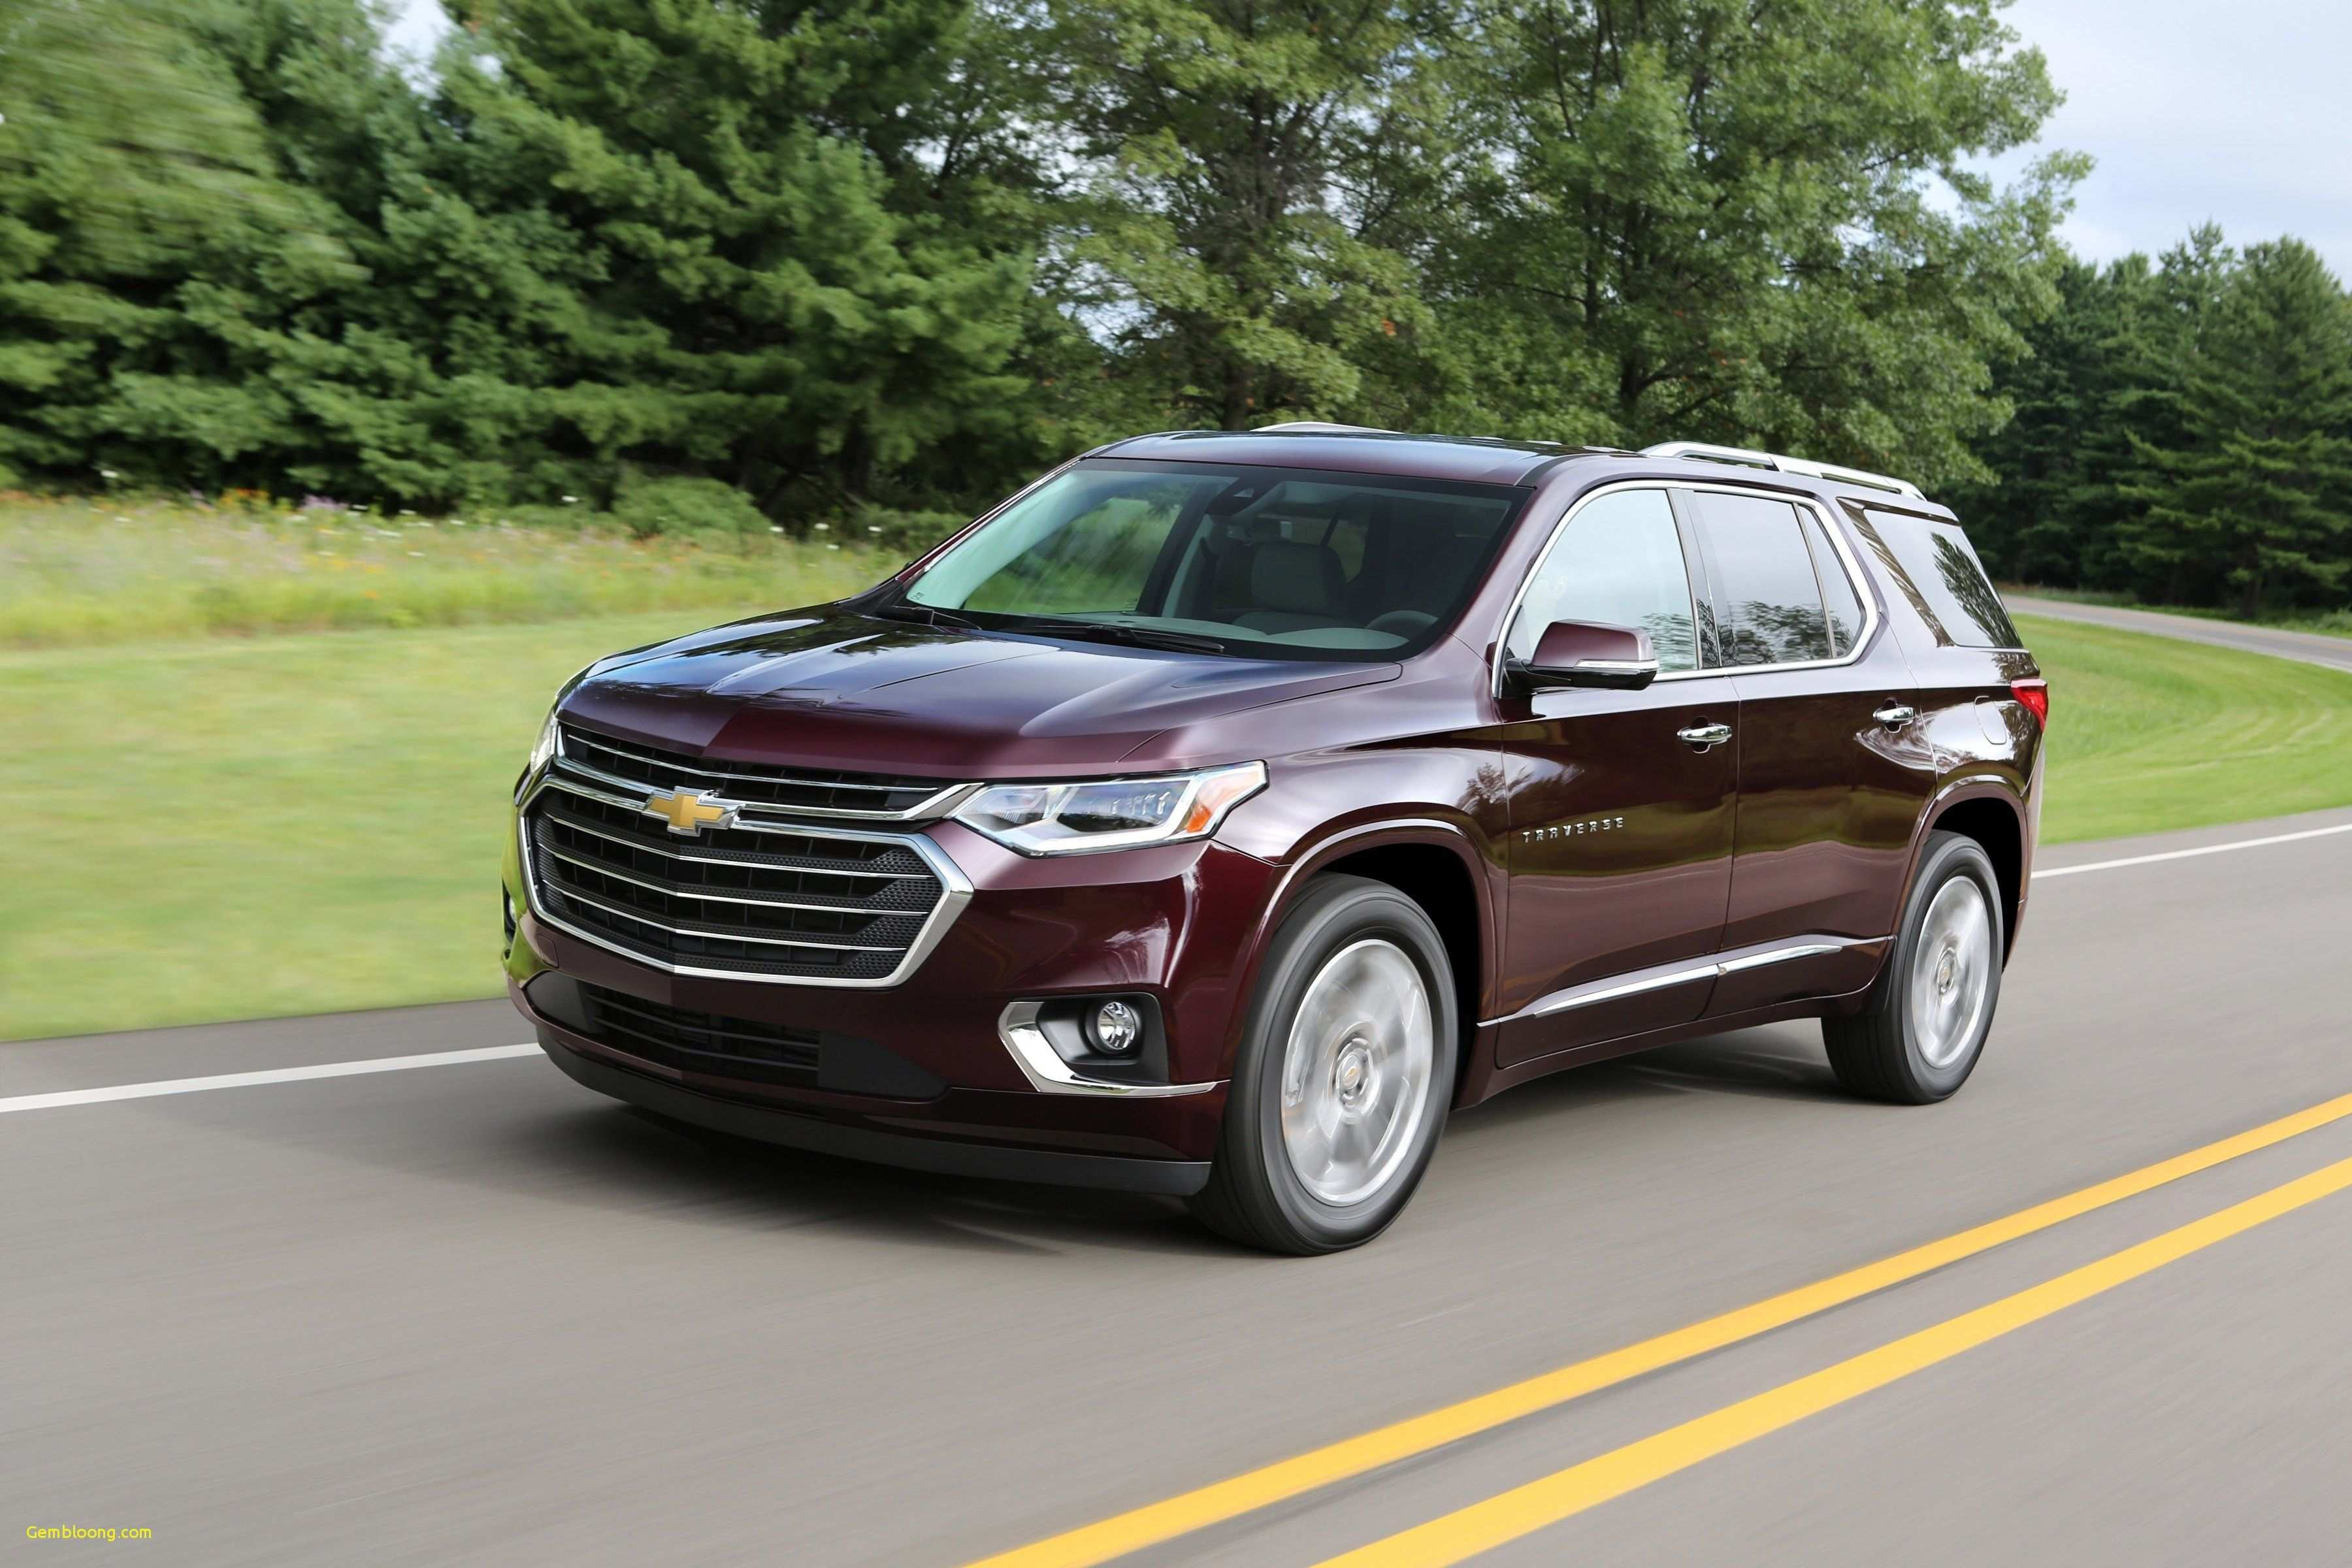 81 The Best 2019 Chevy Tahoe Z71 Ss Photos